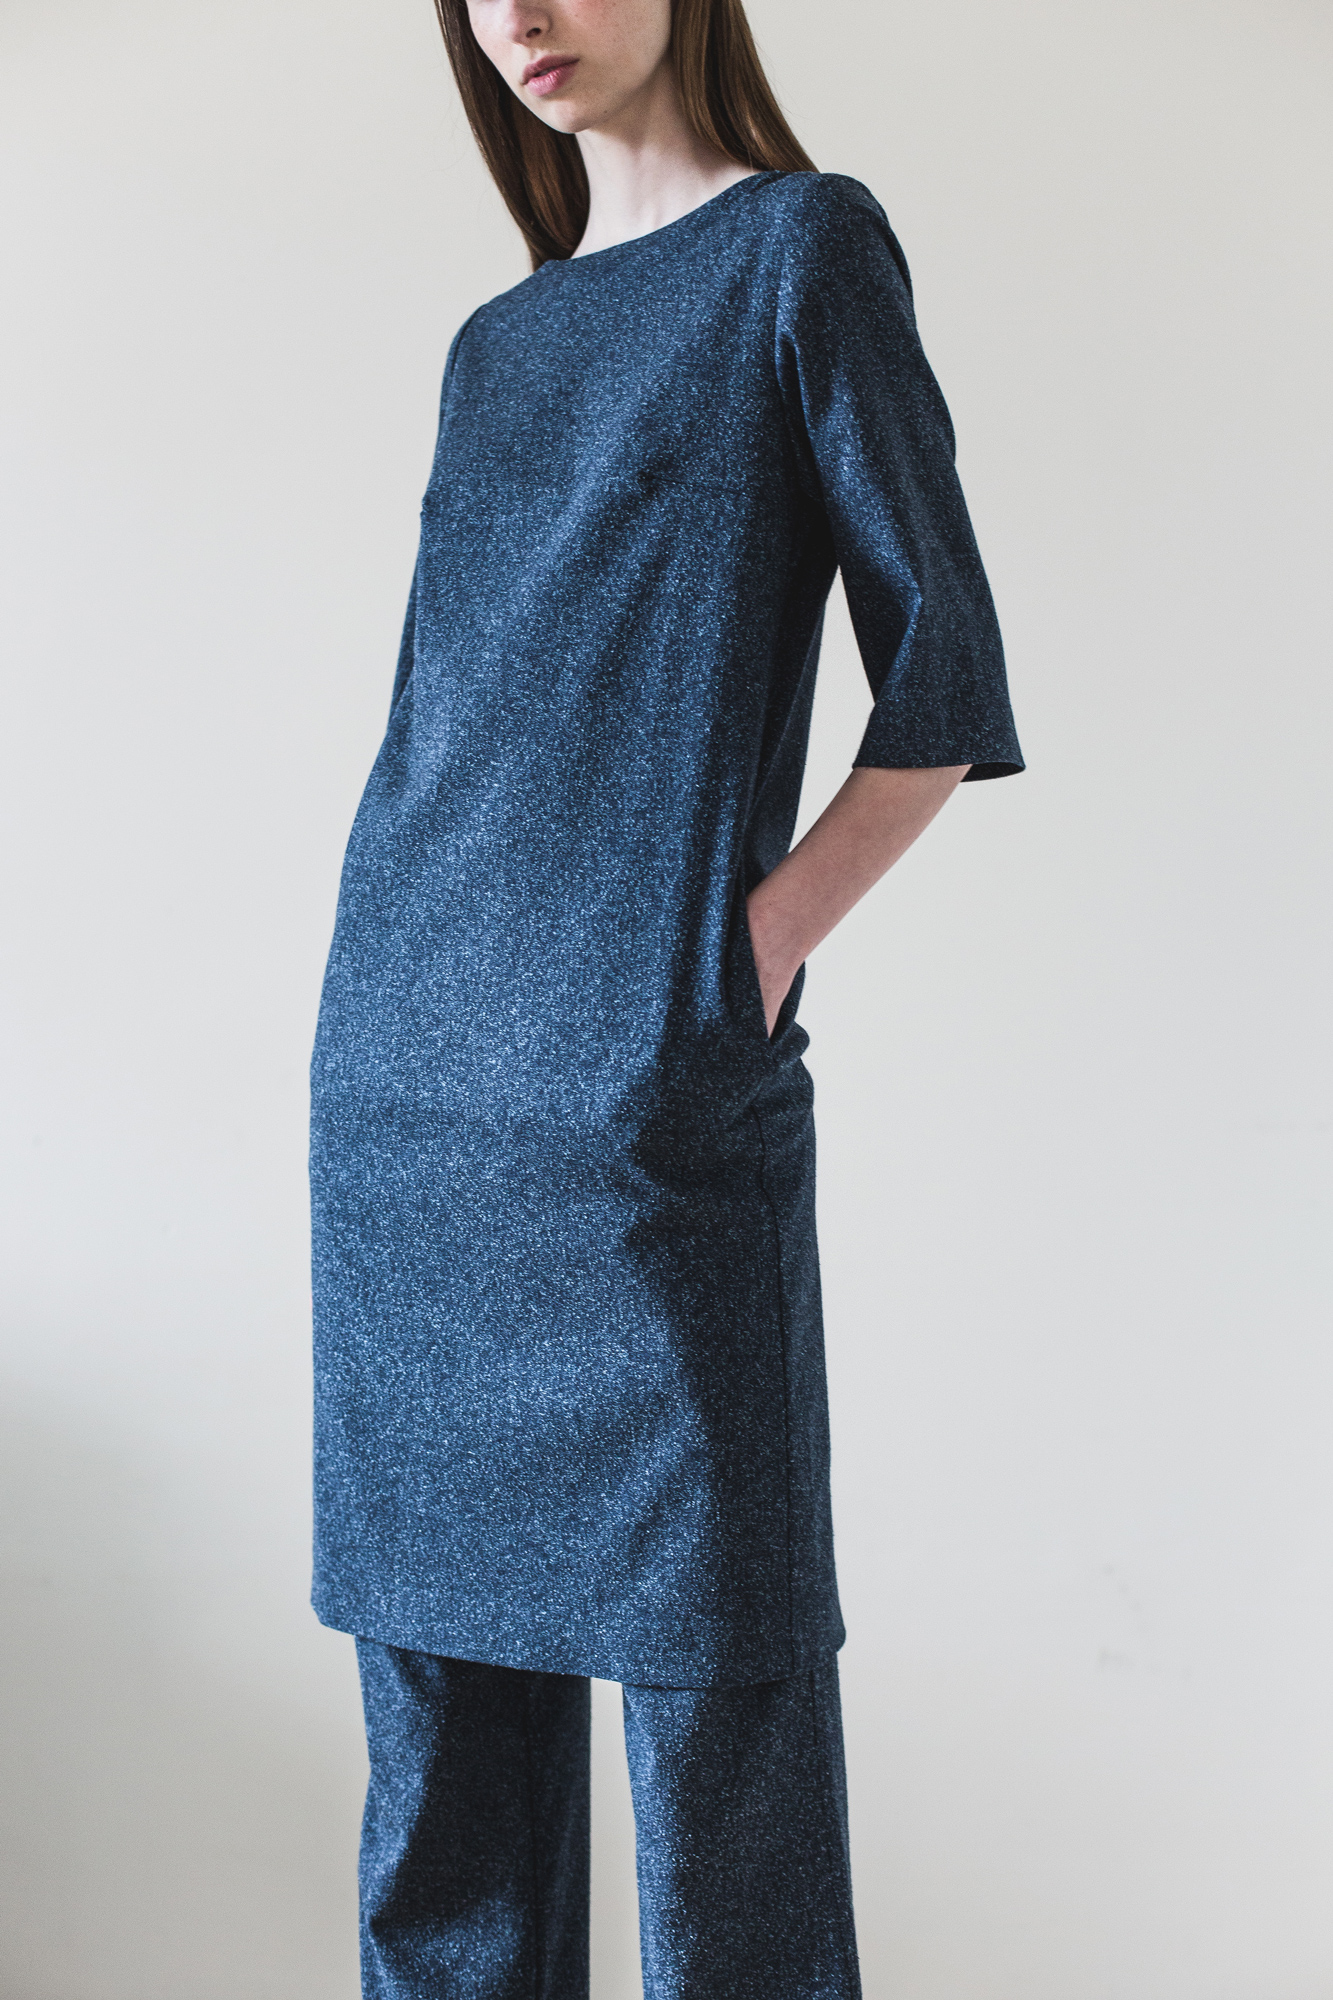 wearenotsisters_wrns_coherence-dress_02